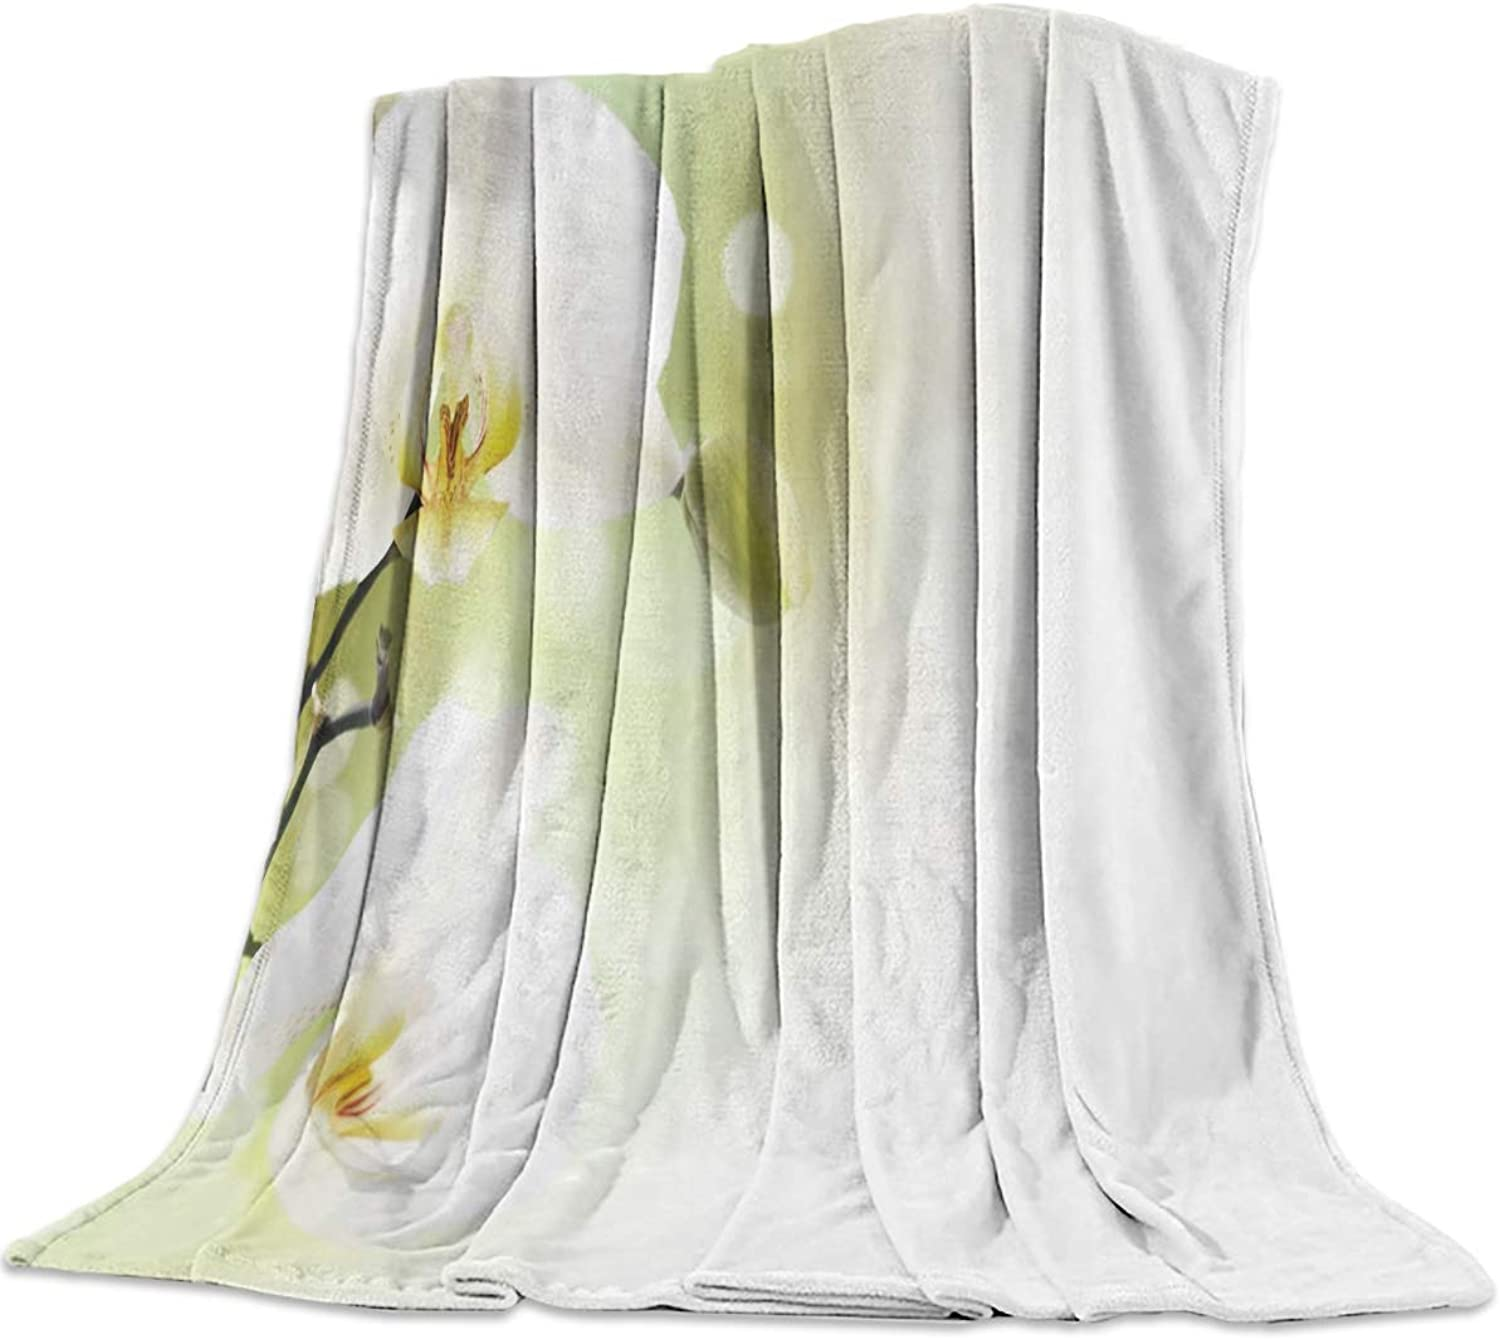 T&H Home Fuzzy Weighted Blanket Flower Blankets, White Phalaenopsis Warm Flannel Throw Blanket for Baby Girls Boys Adult Home Office Sofa Chair Cars 40 x50